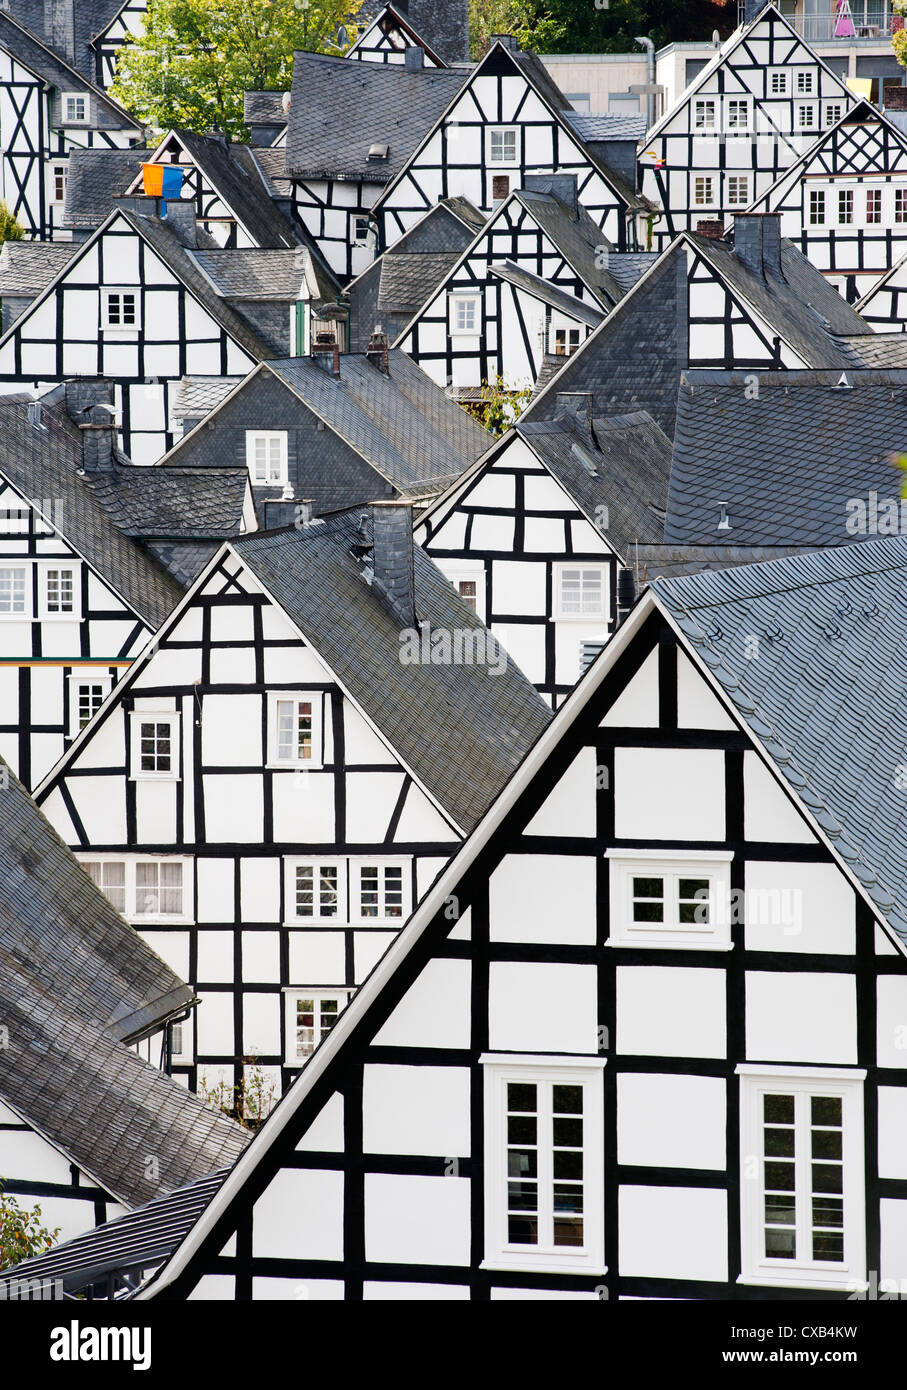 Many half-timbered old houses in Freudenberg village in Siegerland Germany - Stock Image